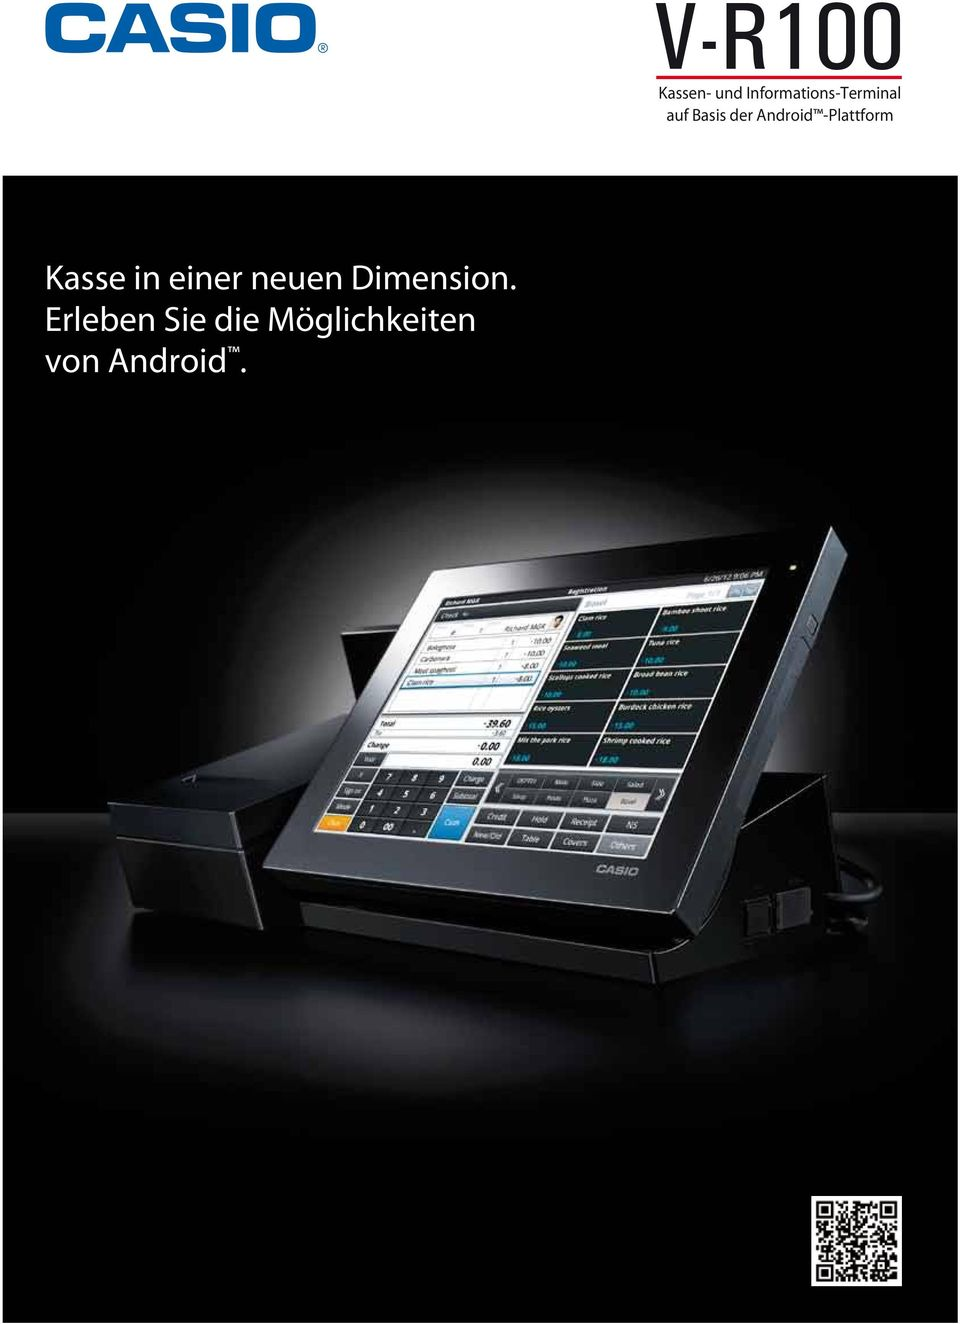 Android -Plattform Kasse in einer